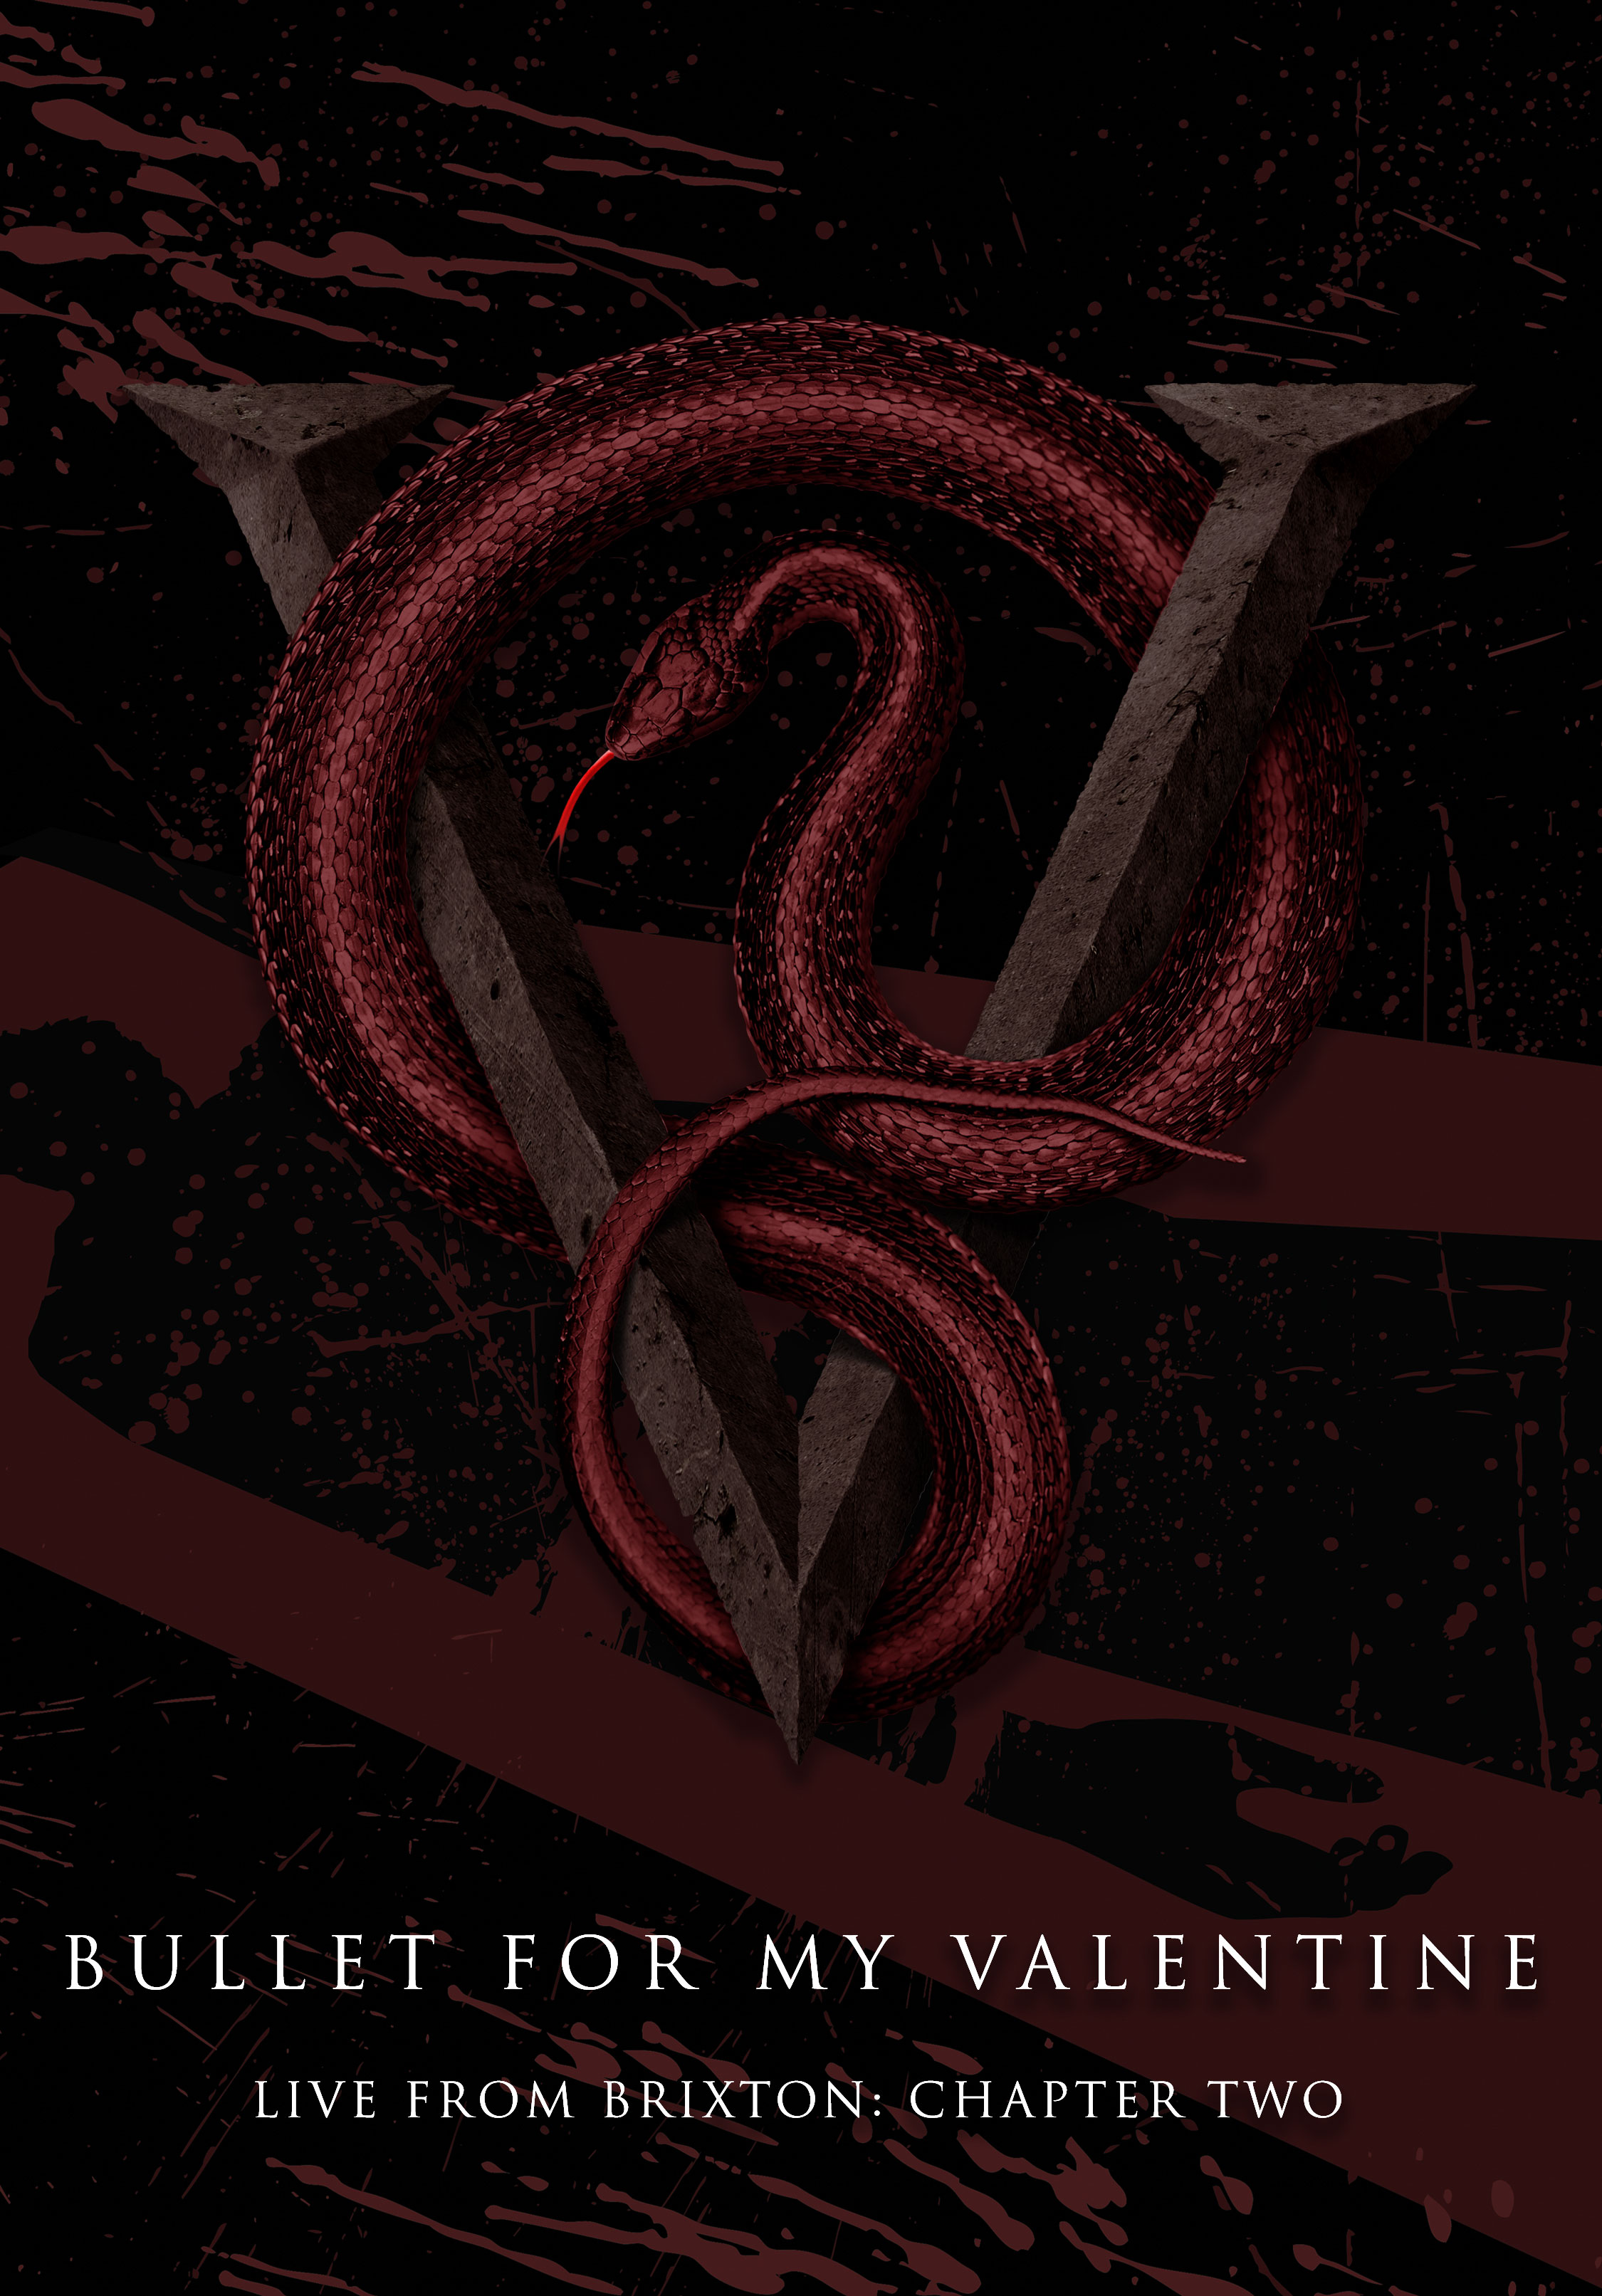 dvd bullet for my valentine live in brixton